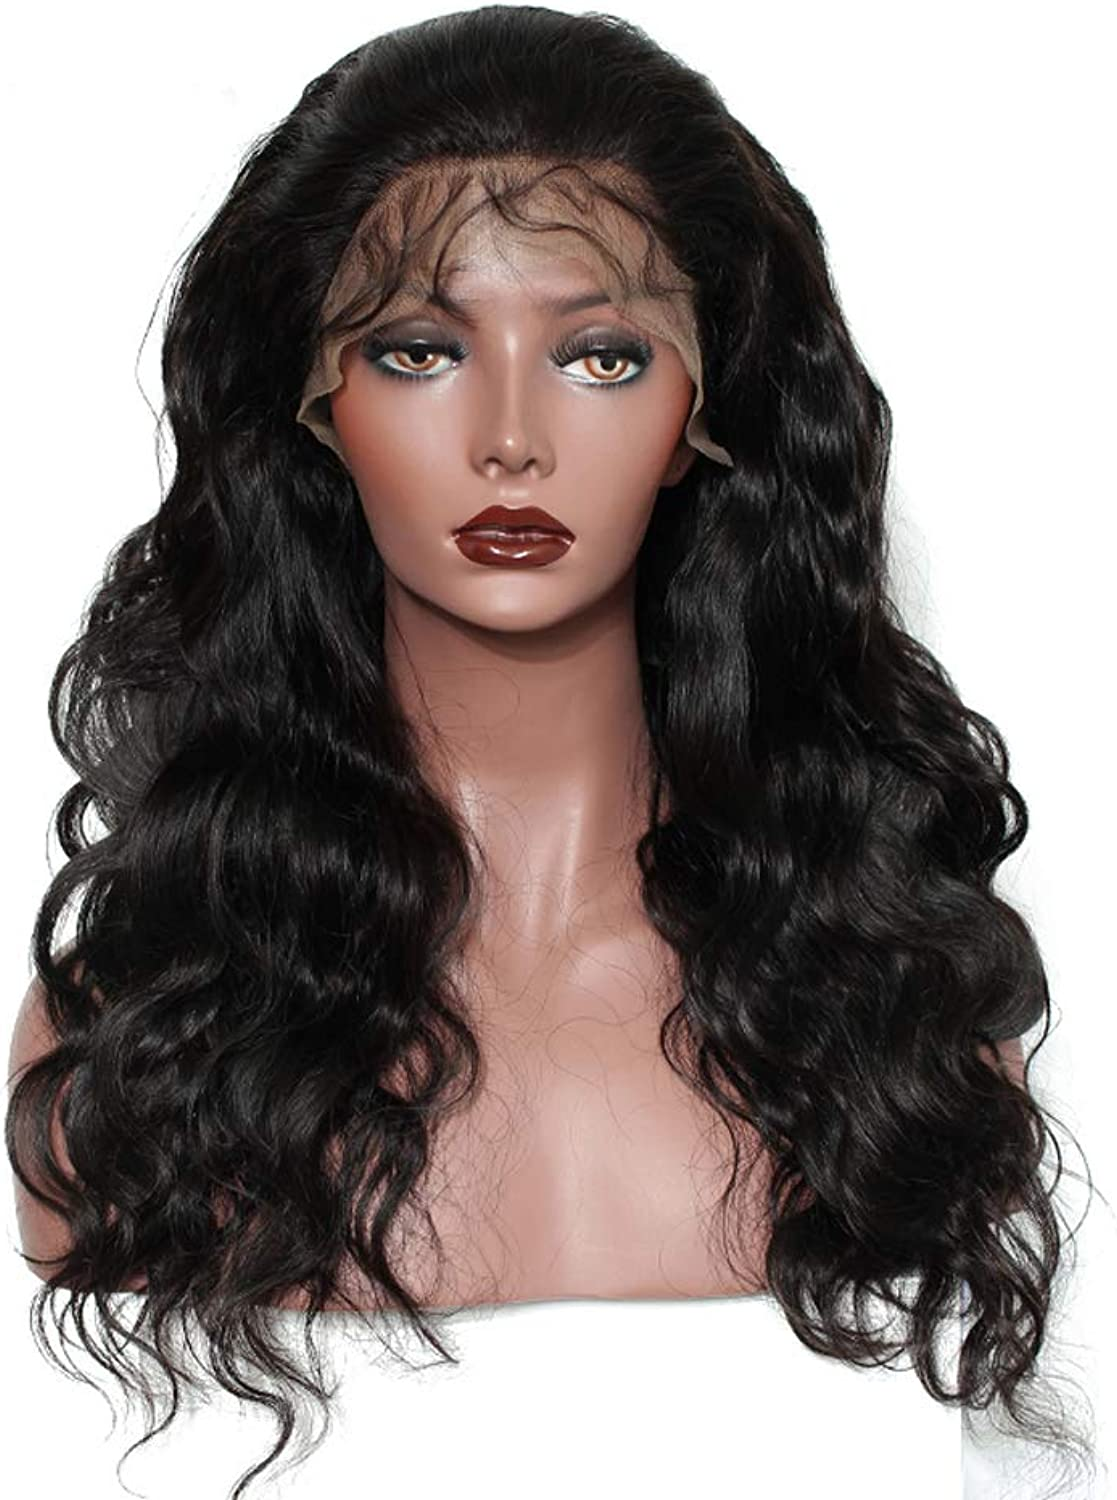 250 Density Lace Front Human Hair Wigs Pre Plucked Brazilian Body Wave Lace Front Wigs For Women Remy